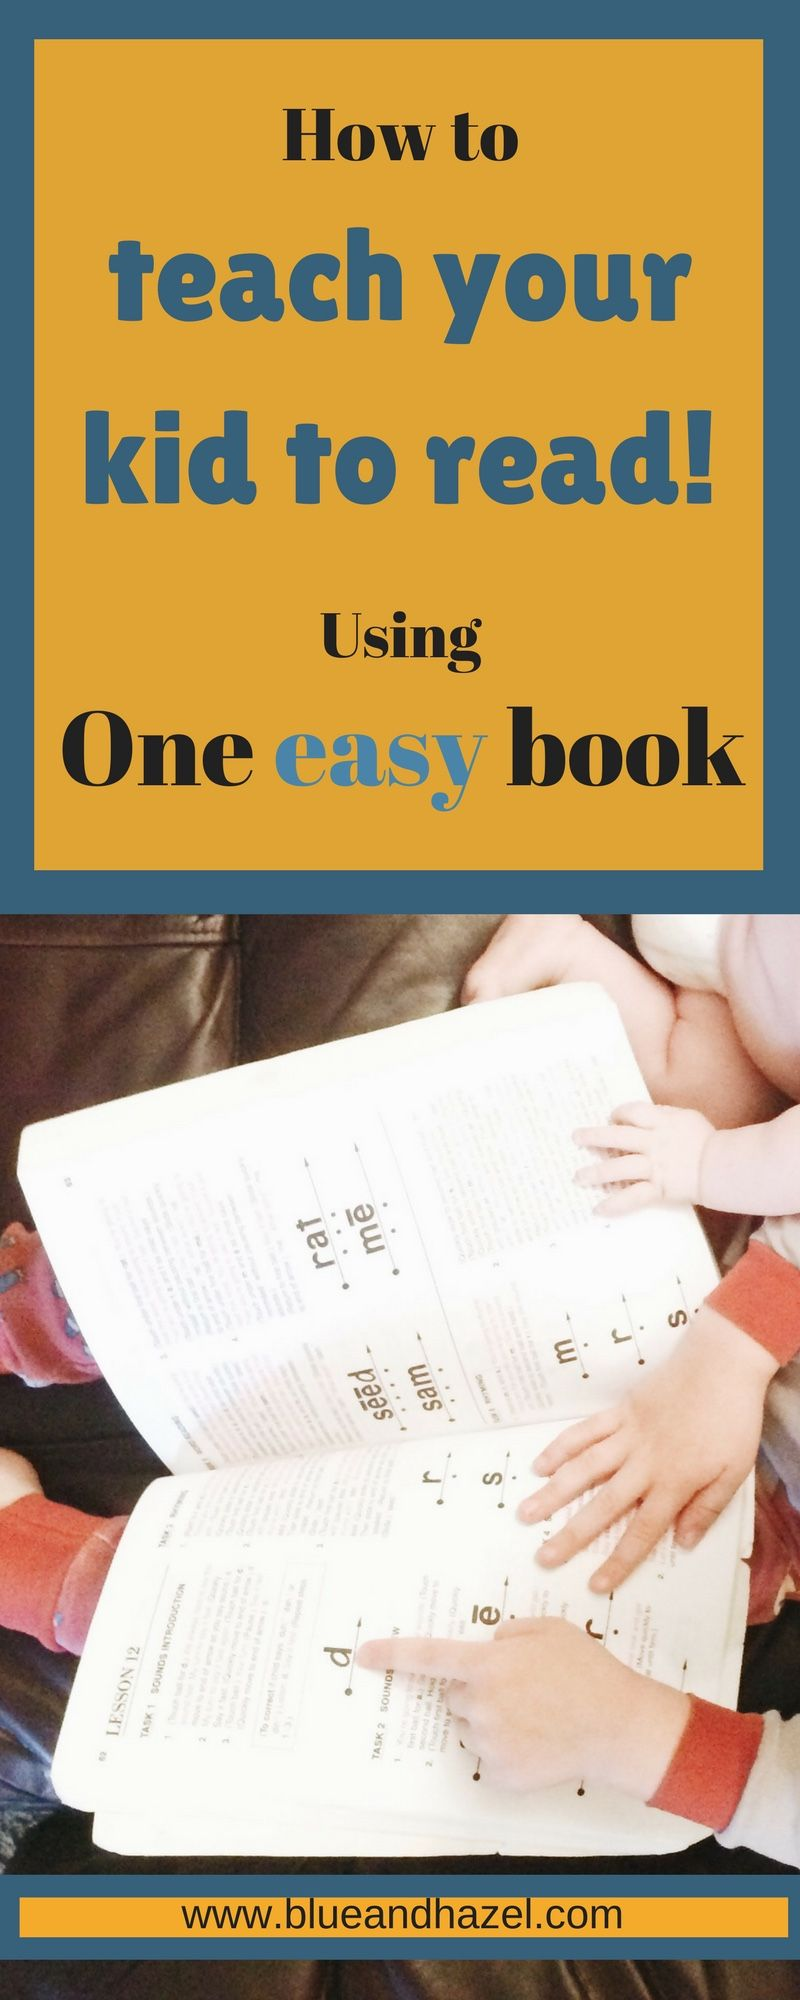 Teach Your Child To Read In 100 Easy Lessons Why It Works Easy Lessons Kids Reading Teaching How to teach reading to year olds